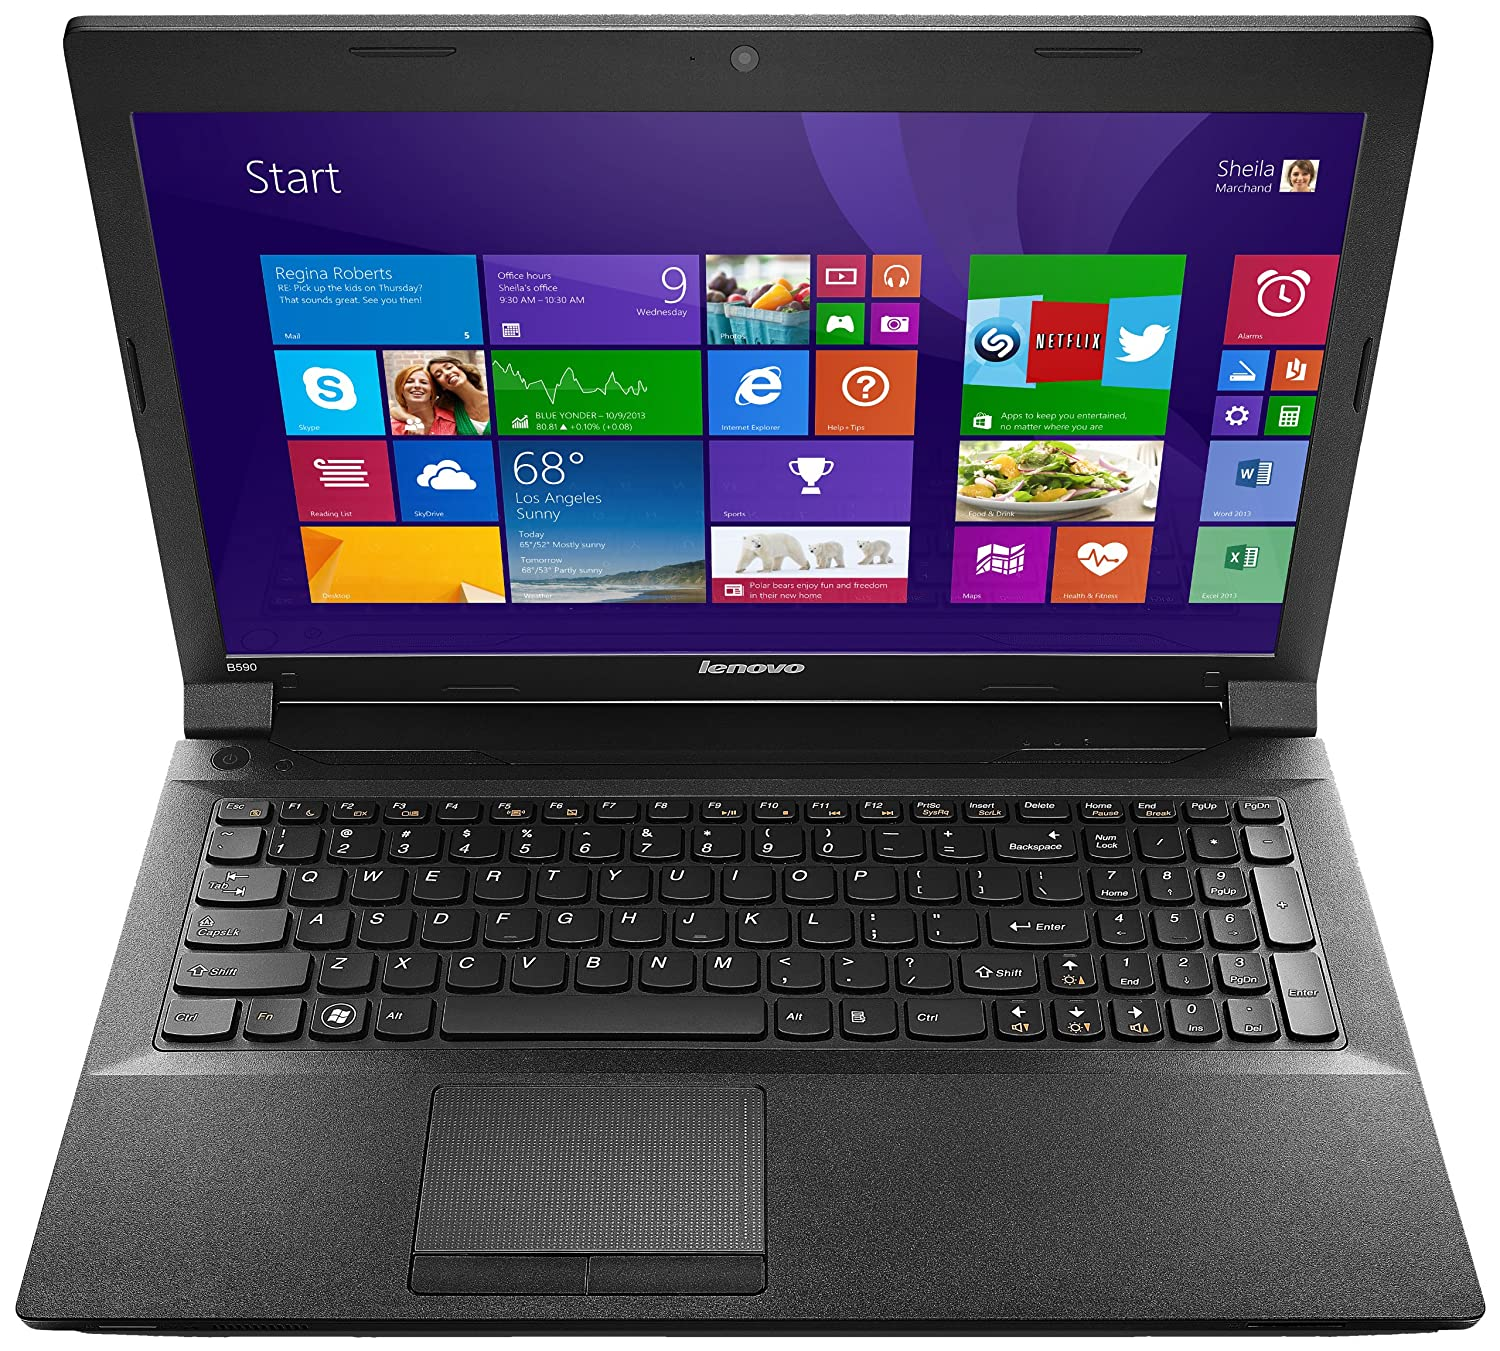 Lenovo IdeaPad 59410451 15.6-Inch Laptop